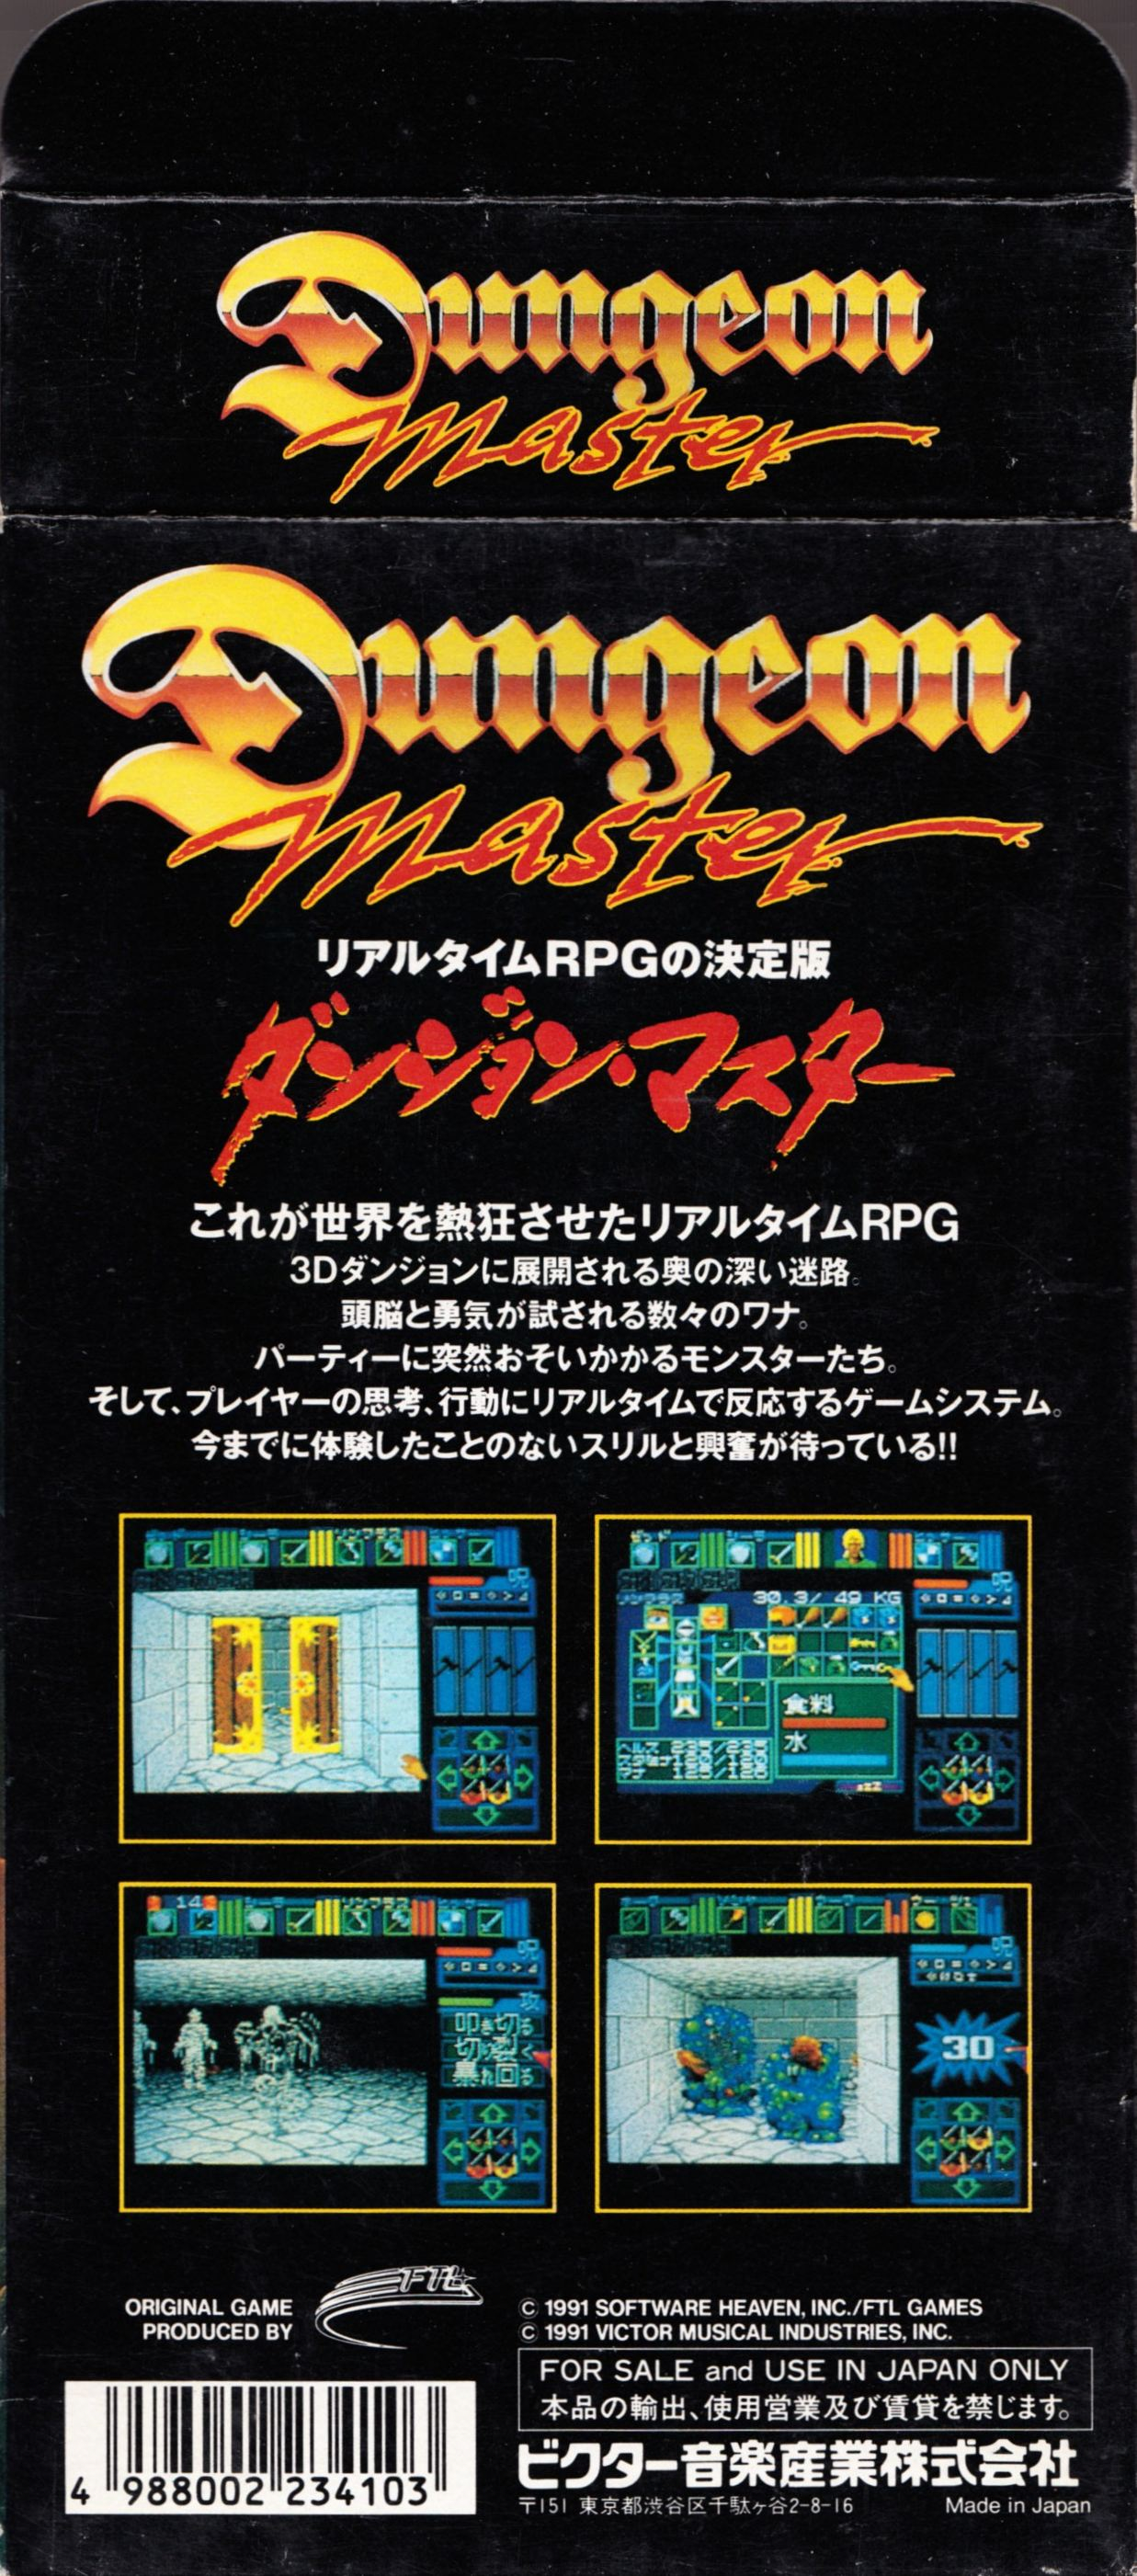 Game - Dungeon Master - JP - Super Famicom - Box - Back Top - Scan